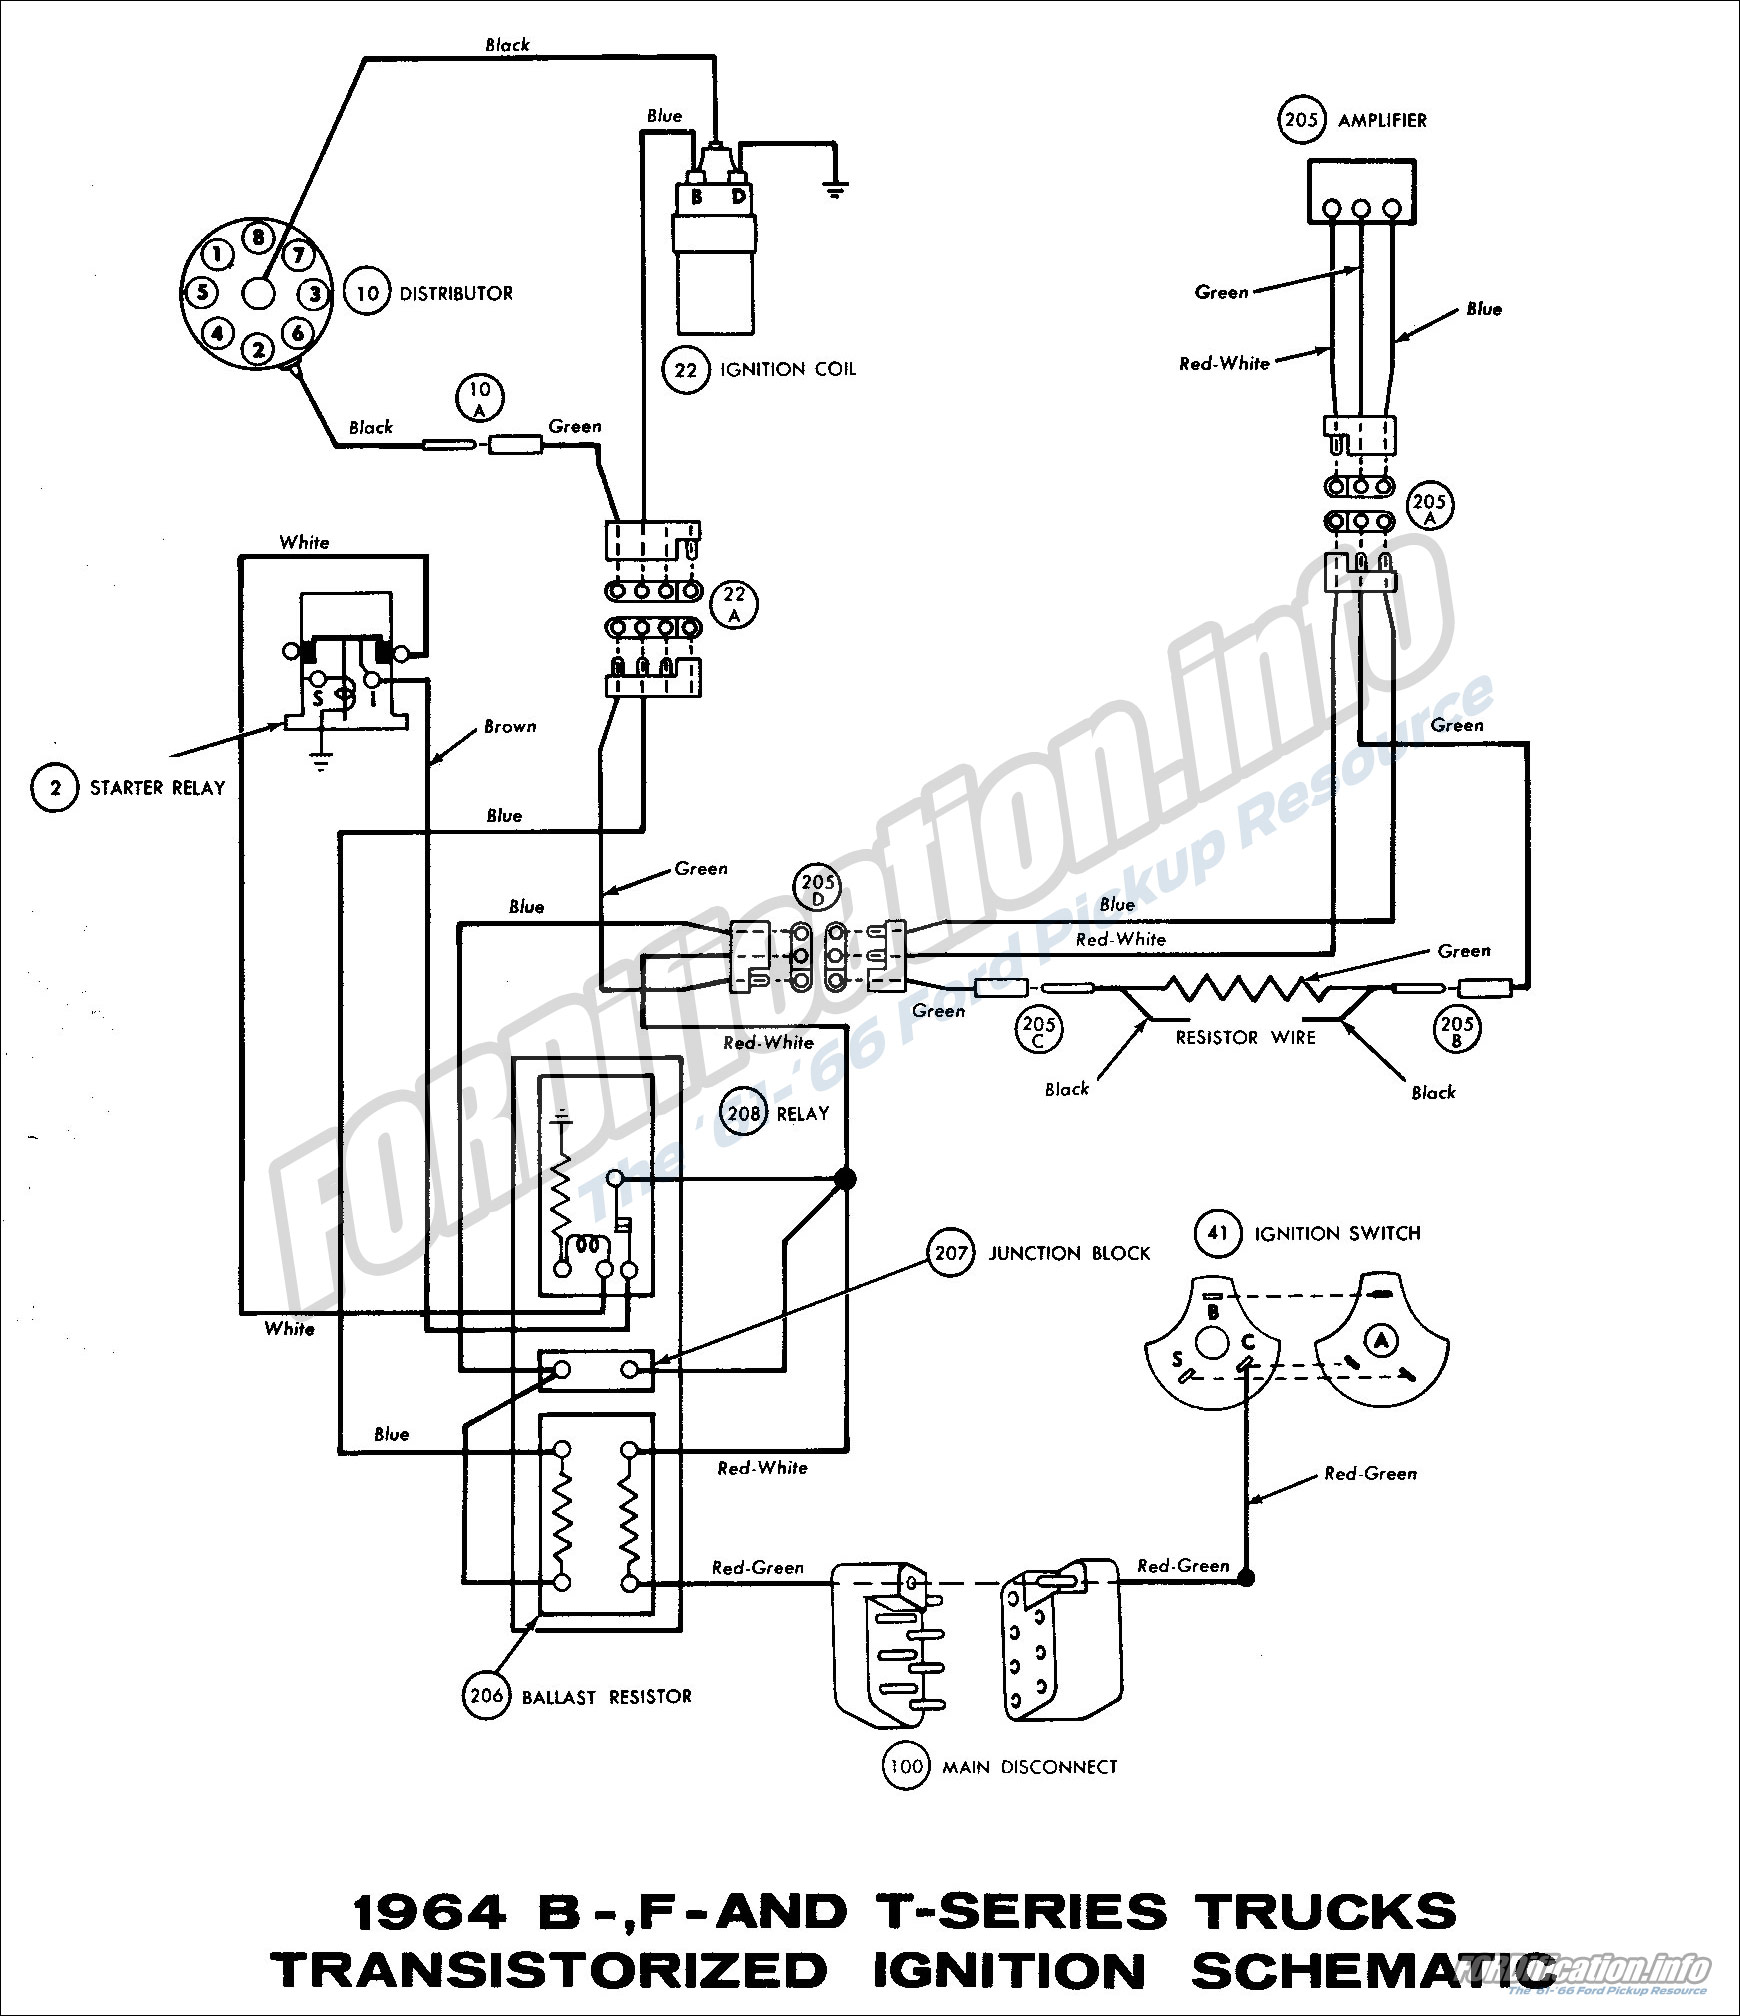 1964 ford truck wiring diagrams fordification info the 61 66 rh fordification info ford ignition module wiring ford 8n ignition wiring diagram